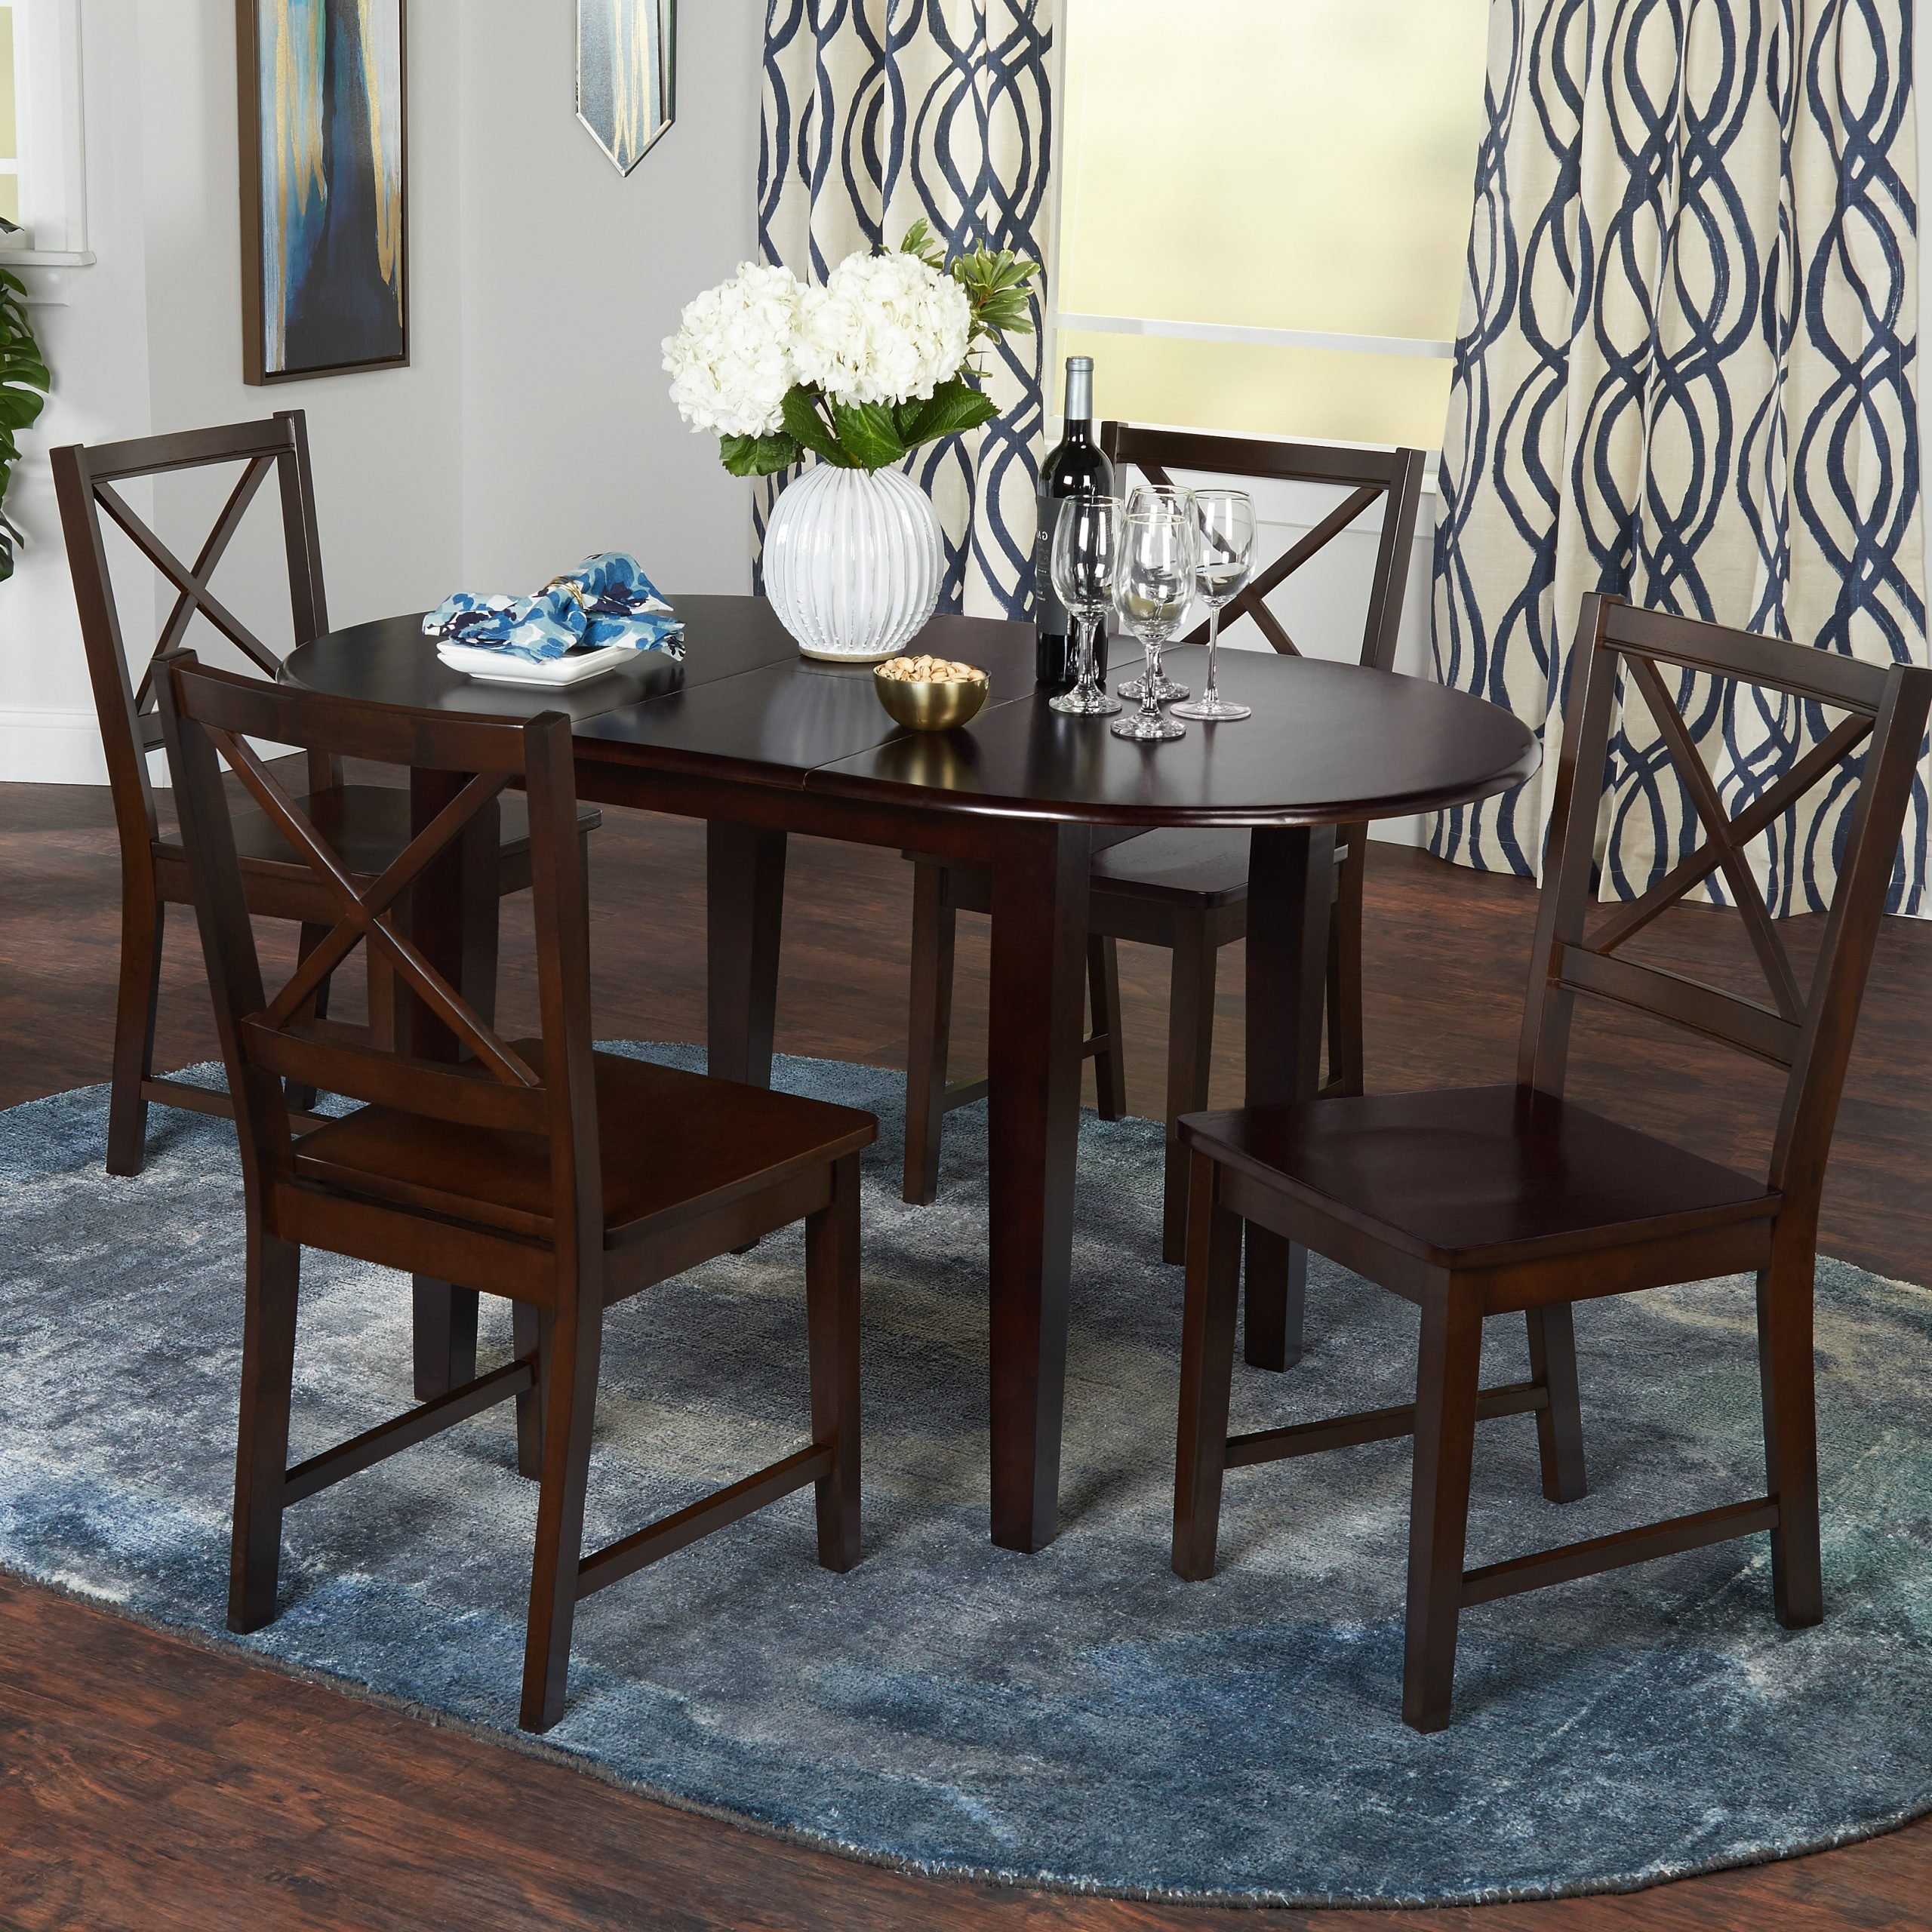 Alamo Transitional 4 Seating Double Drop Leaf Round Casual Dining Tables Throughout Recent Tapas Butterfly Dining Table, Espresso – Walmart (View 7 of 26)